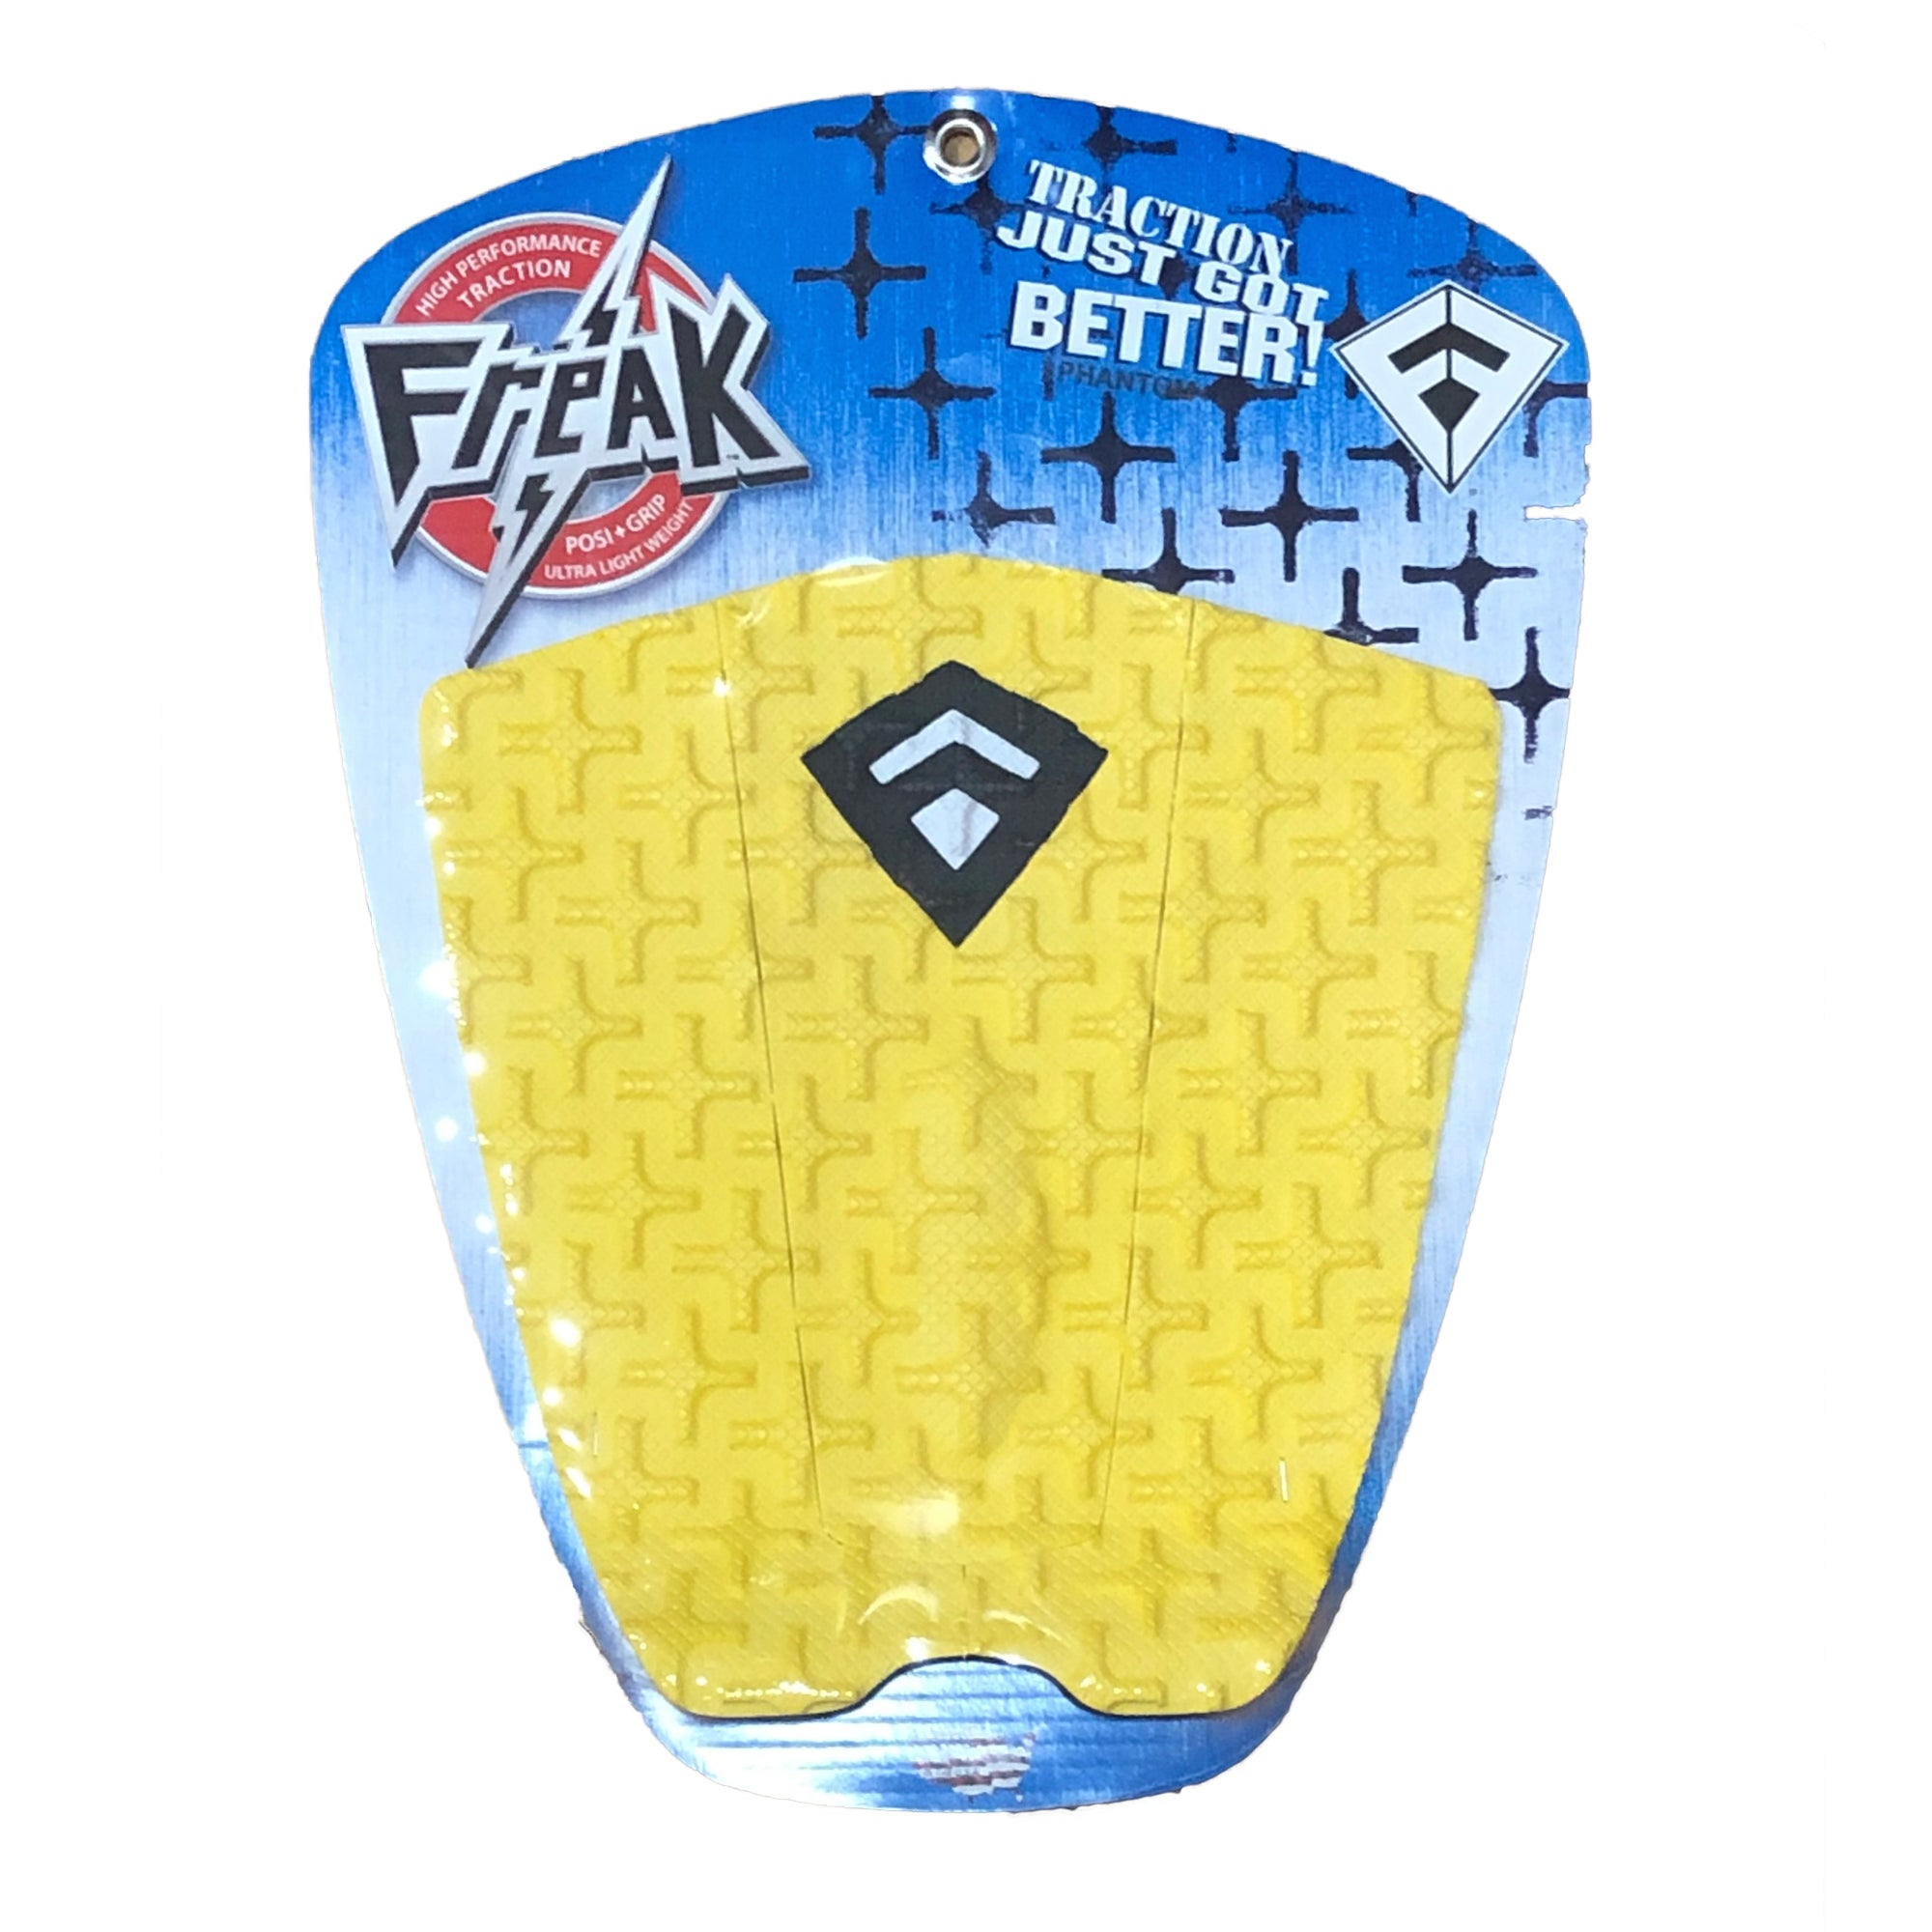 Freak Phantom Traction Pad - Yellow/Black/White